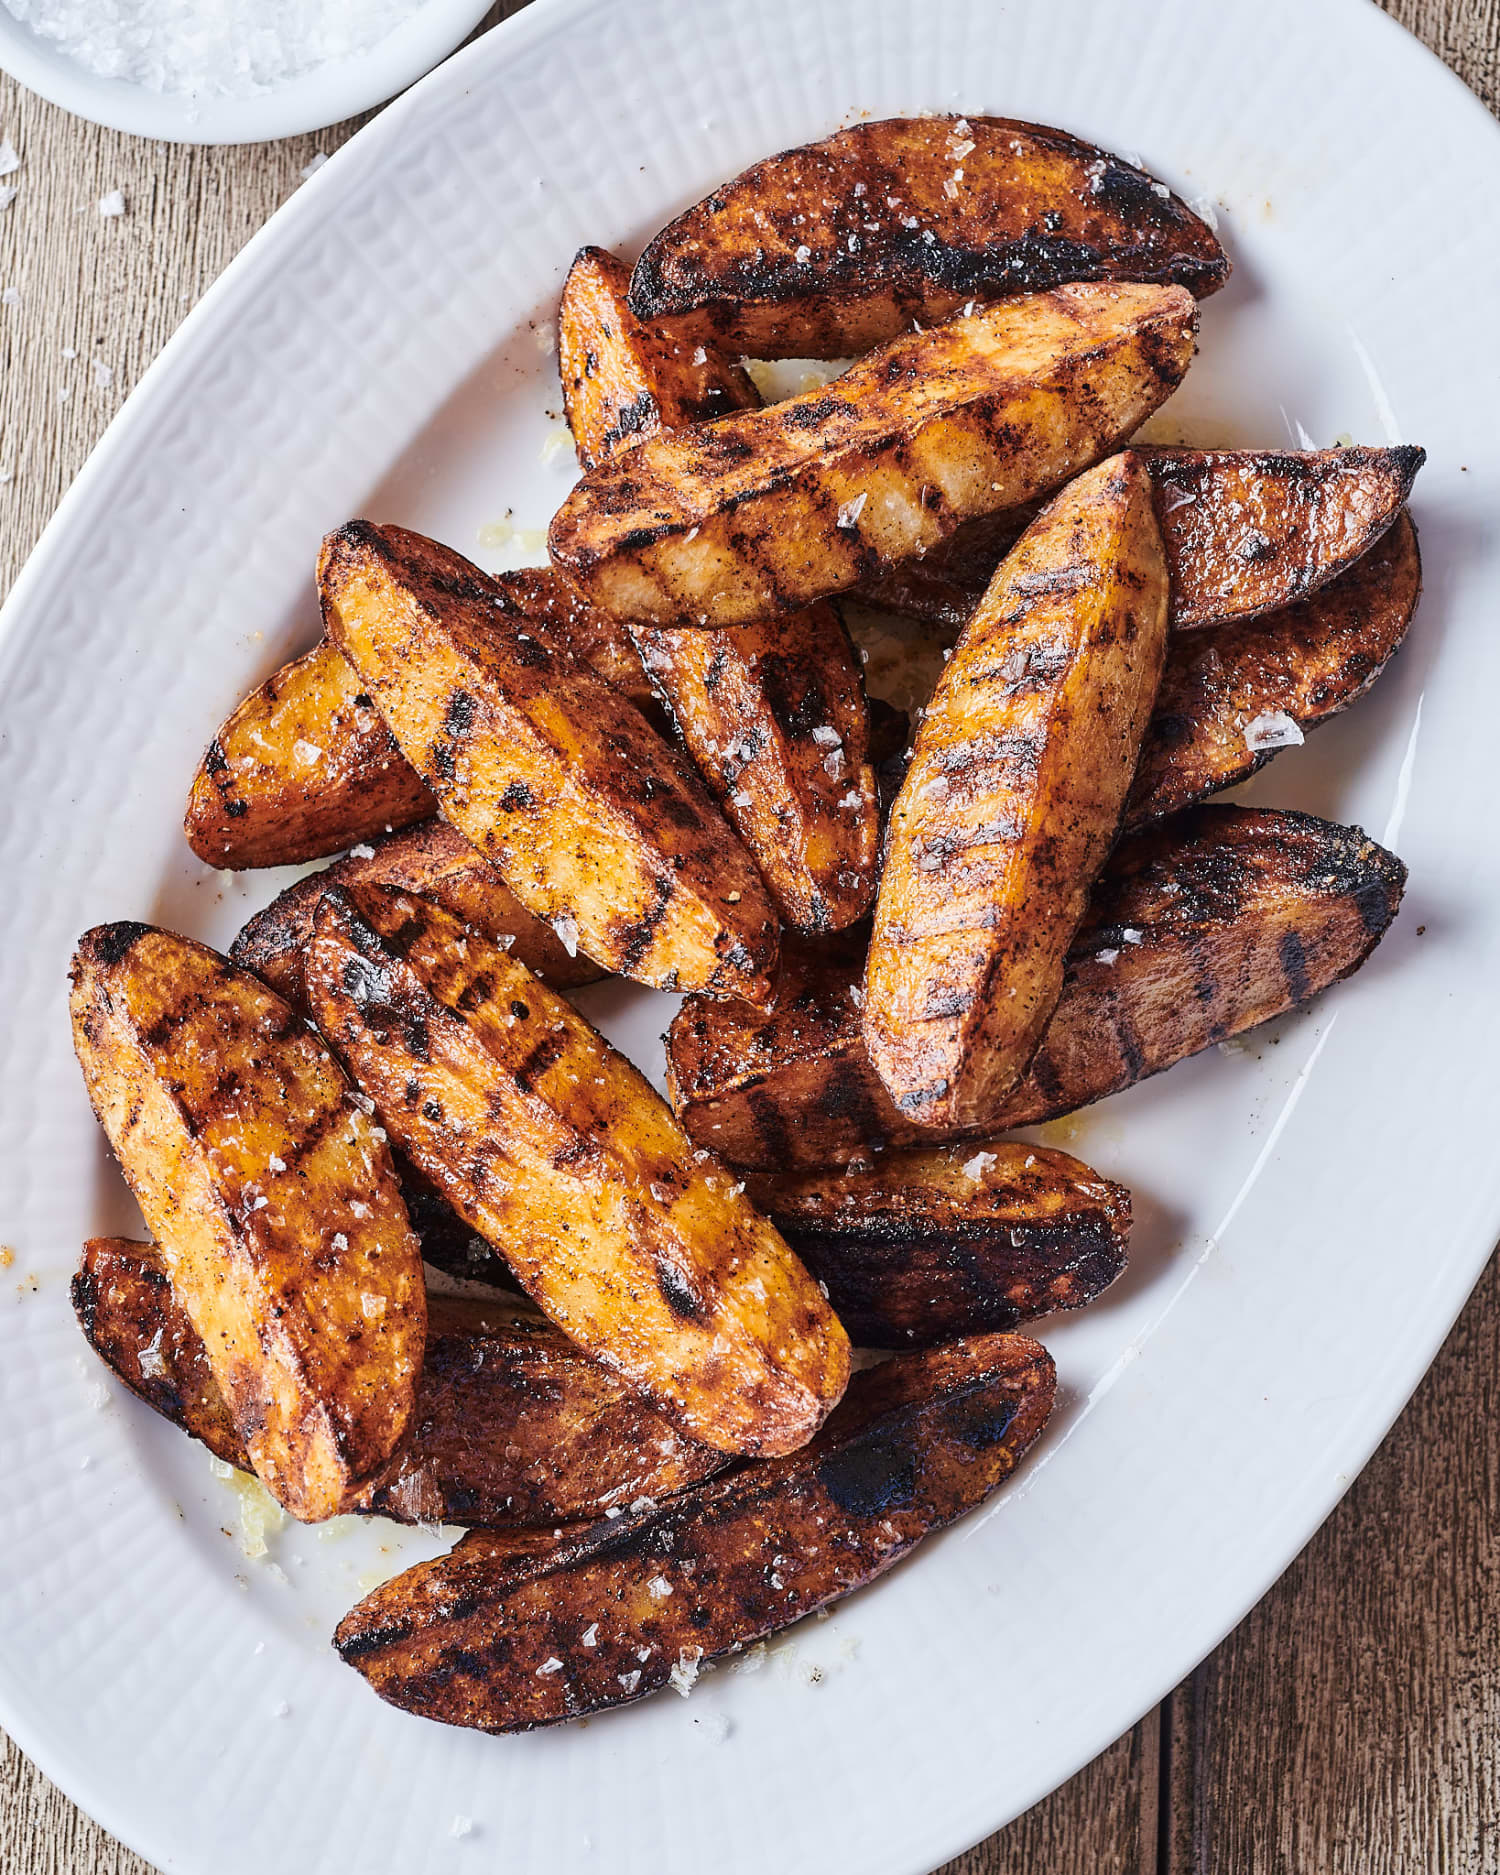 Crispy, Creamy Grilled Potato Wedges are the Perfect Summer Side (Just 3 Ingredients!)